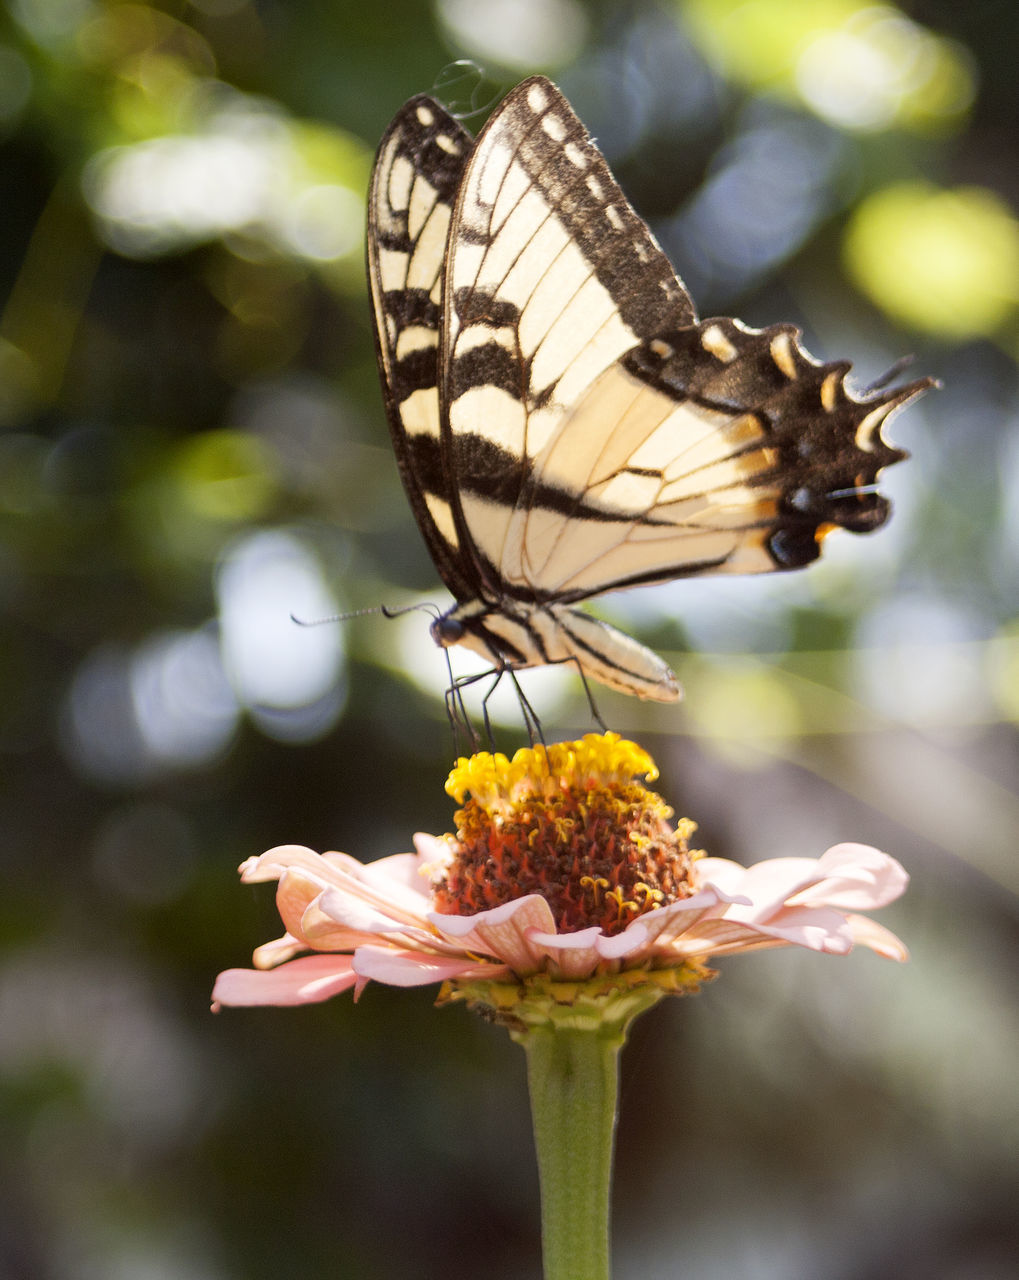 Close-Up Of Butterfly On Flower During Sunny Day